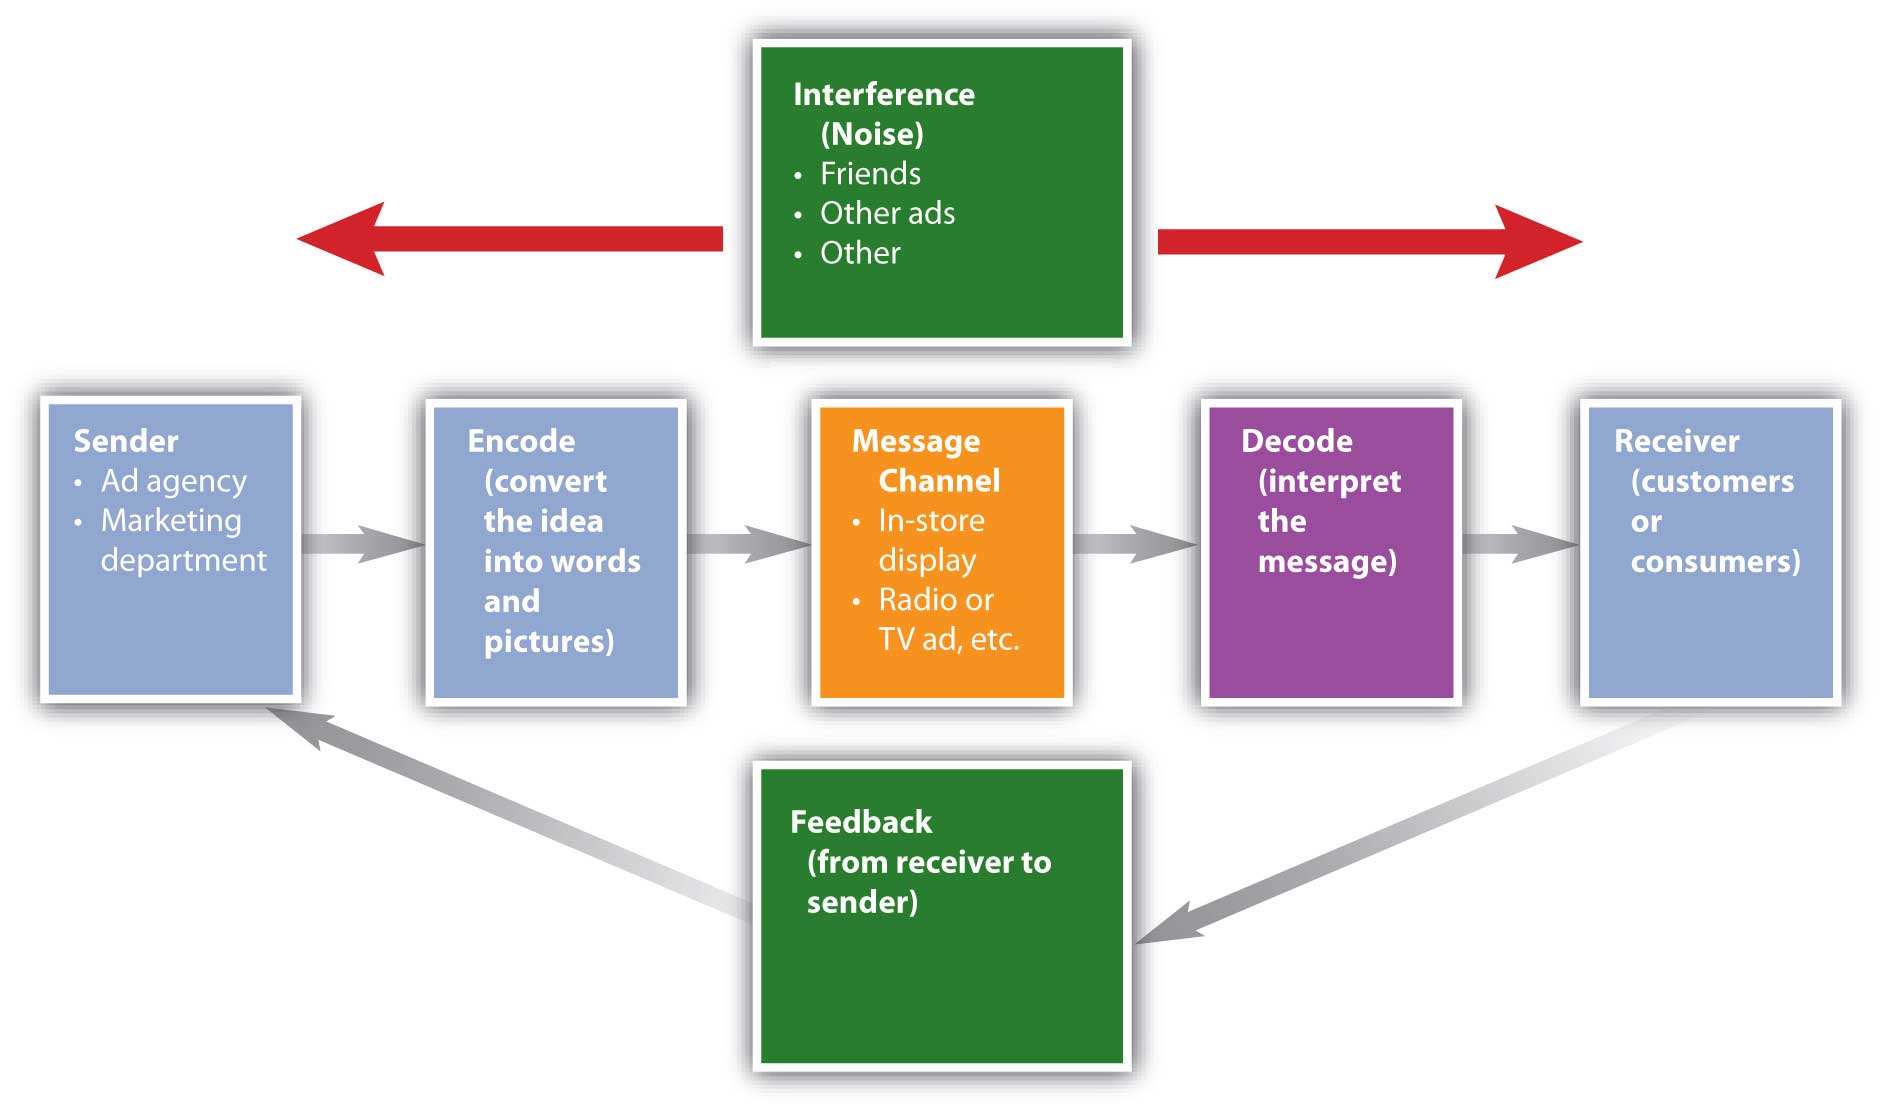 The communication consisting of sender, encoding, message channel, decode, receiver and feedback